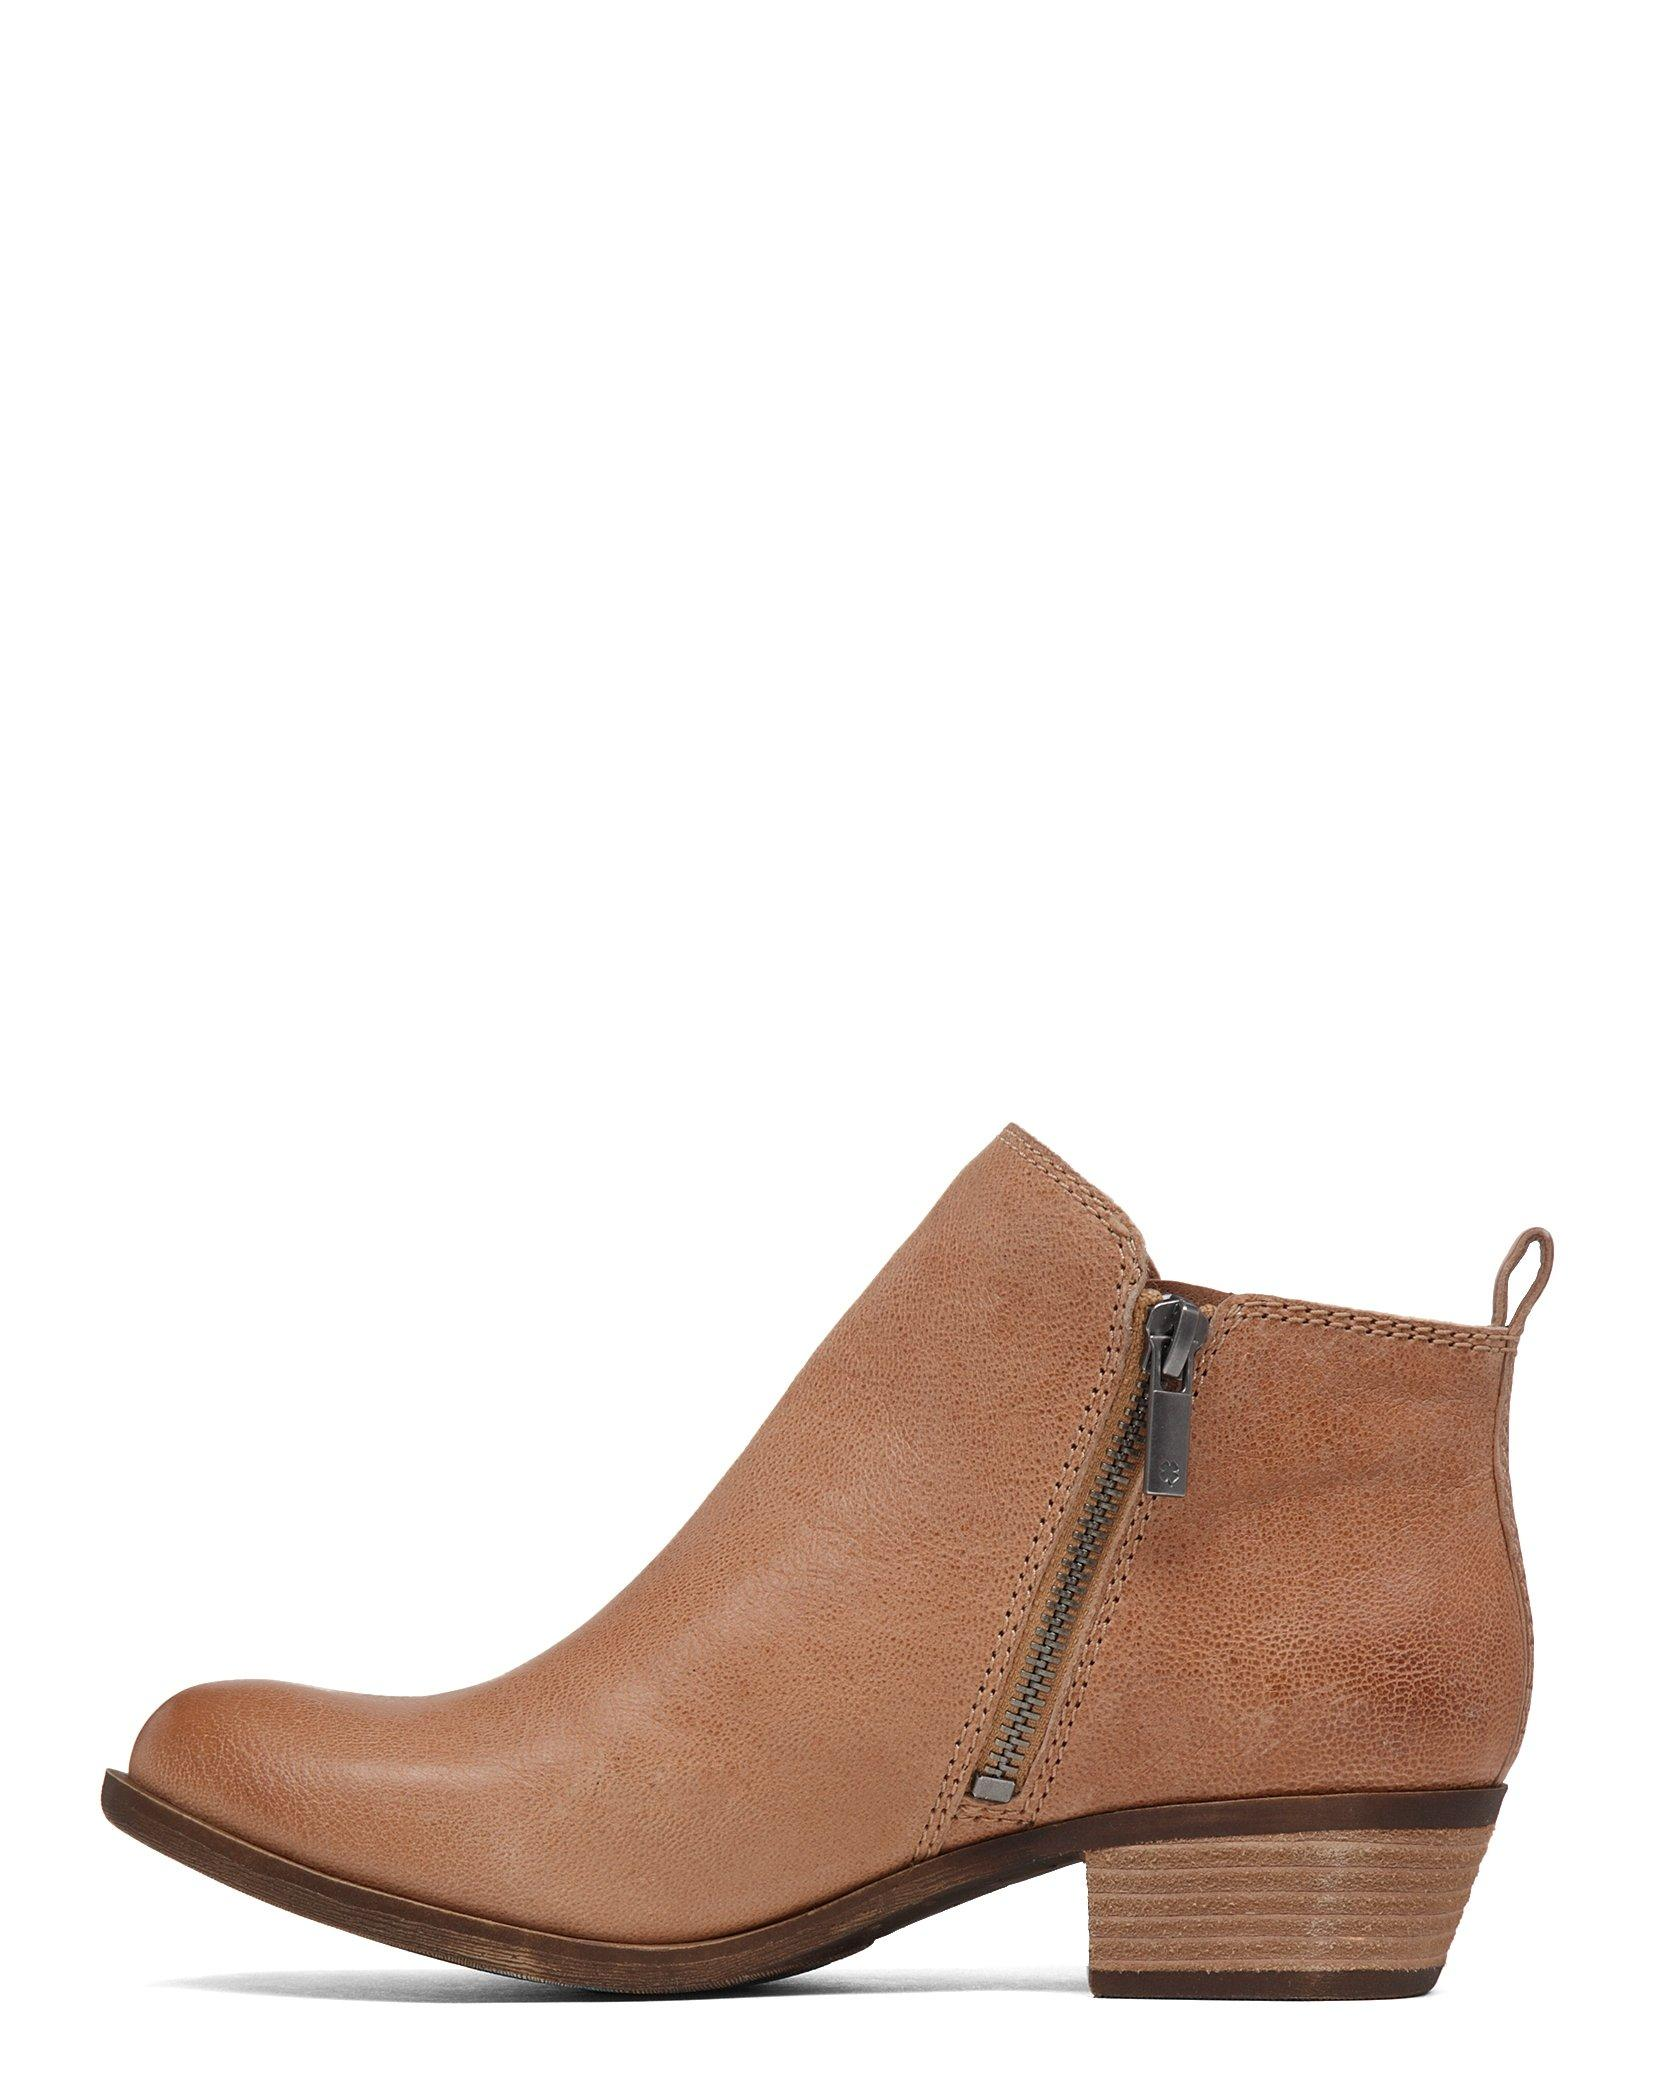 BASEL LEATHER FLAT BOOTIE, image 3